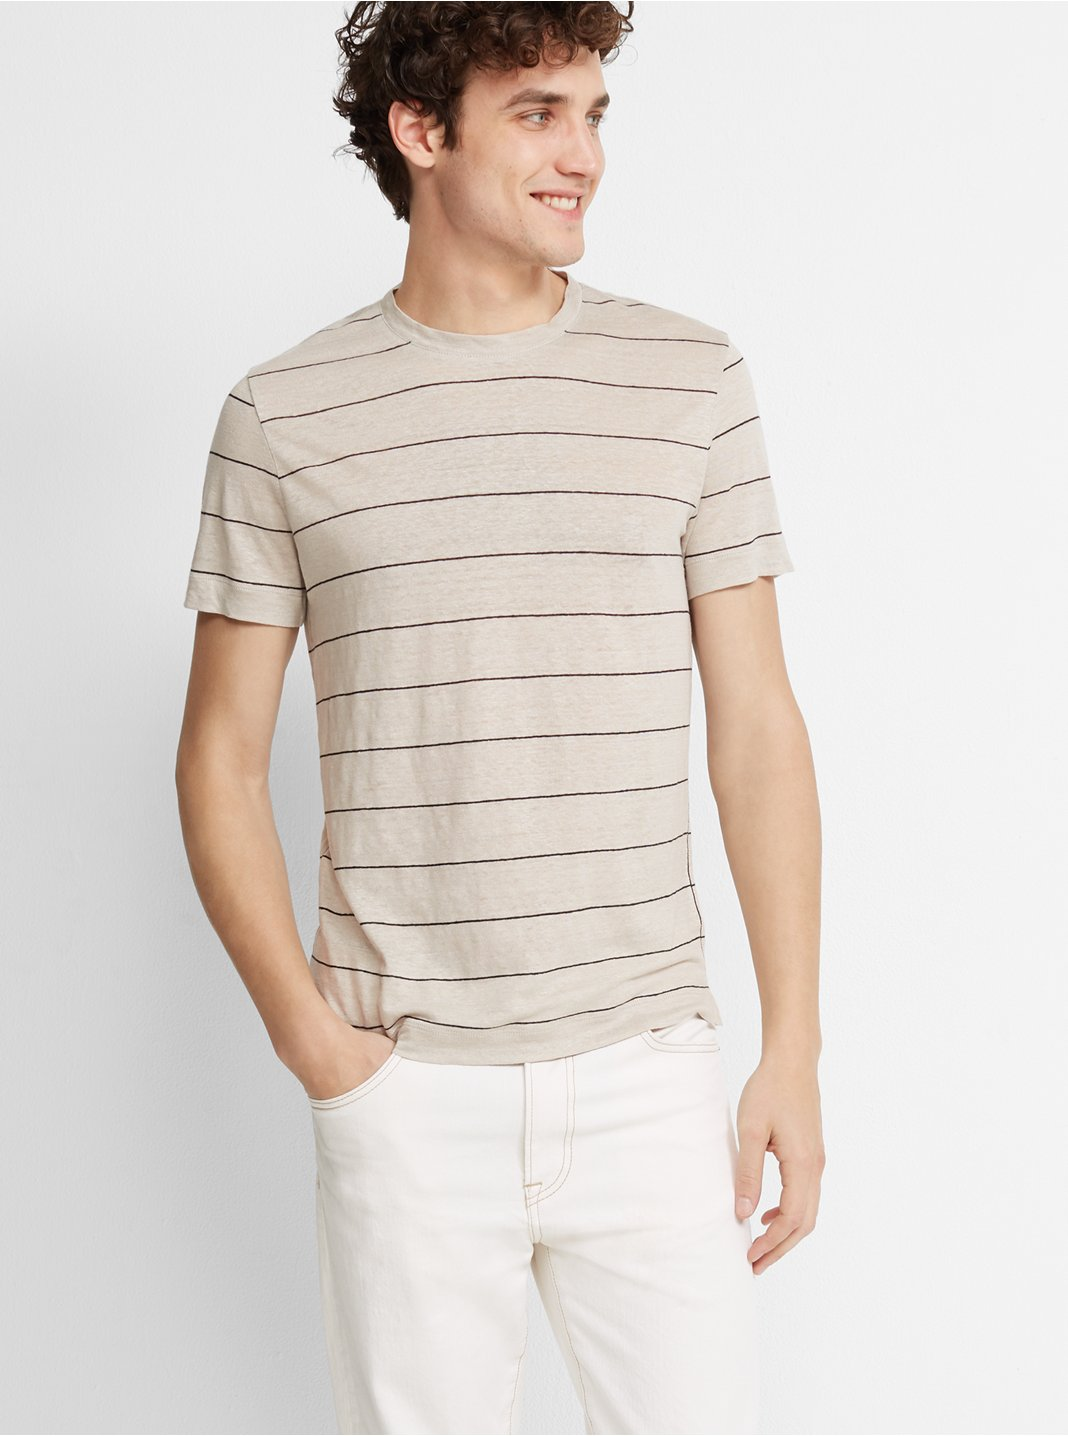 클럽 모나코 맨 스트라이프 리넨 반팔 티셔츠 Club Monaco Short-Sleeve Stripe Linen Crew,Natural And Black